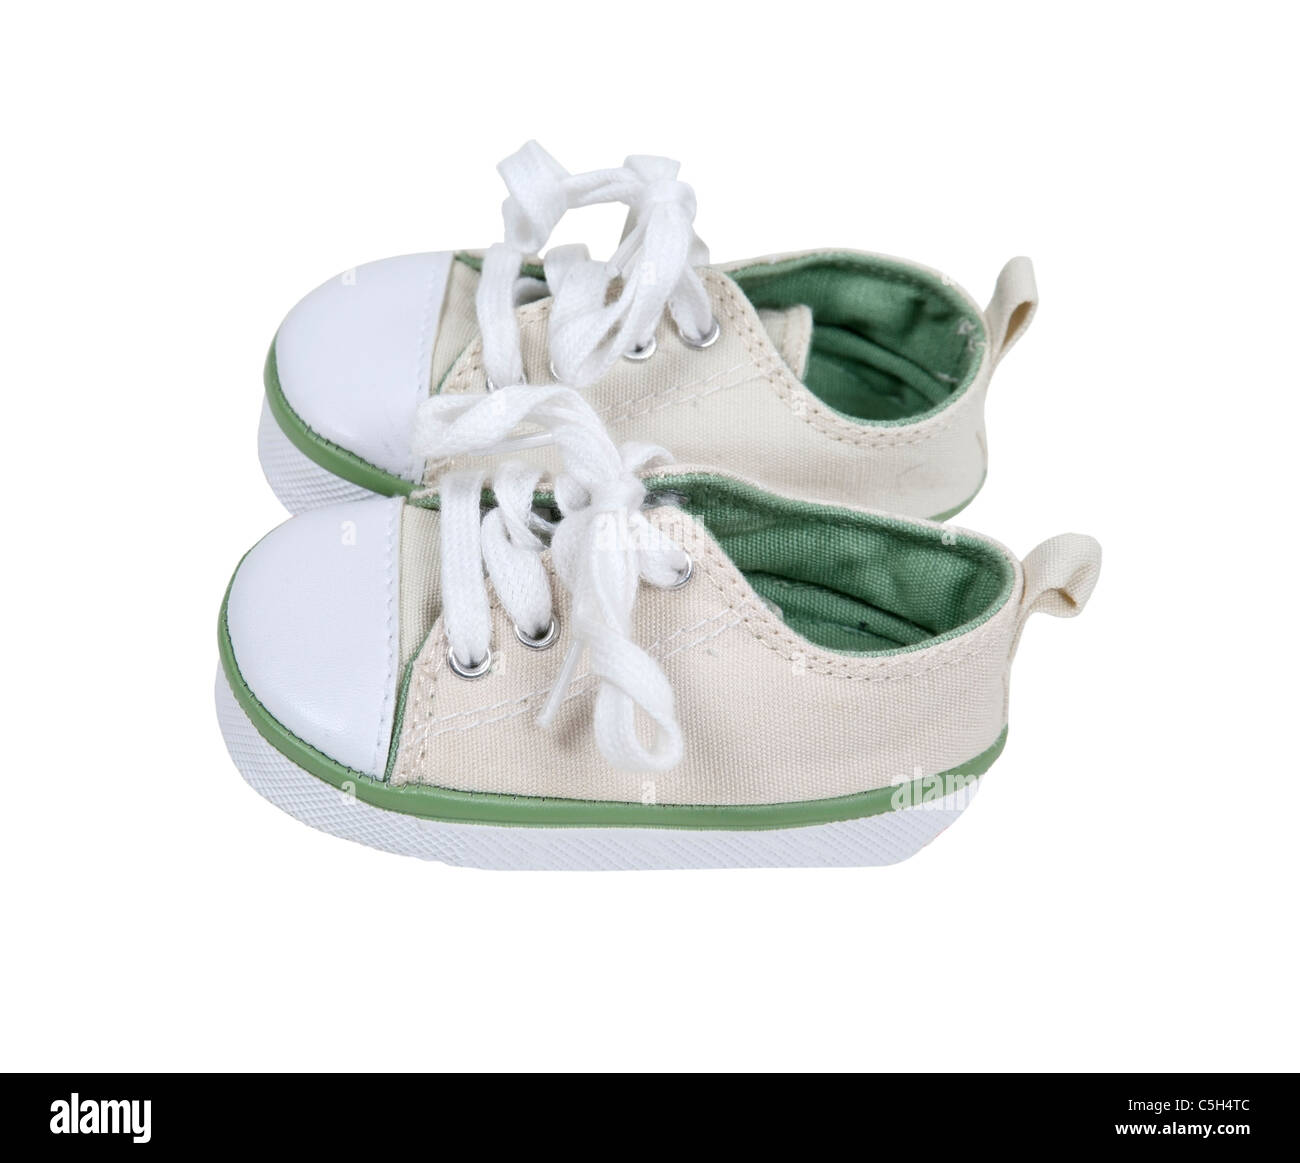 Baby canvas shoes for protecting little